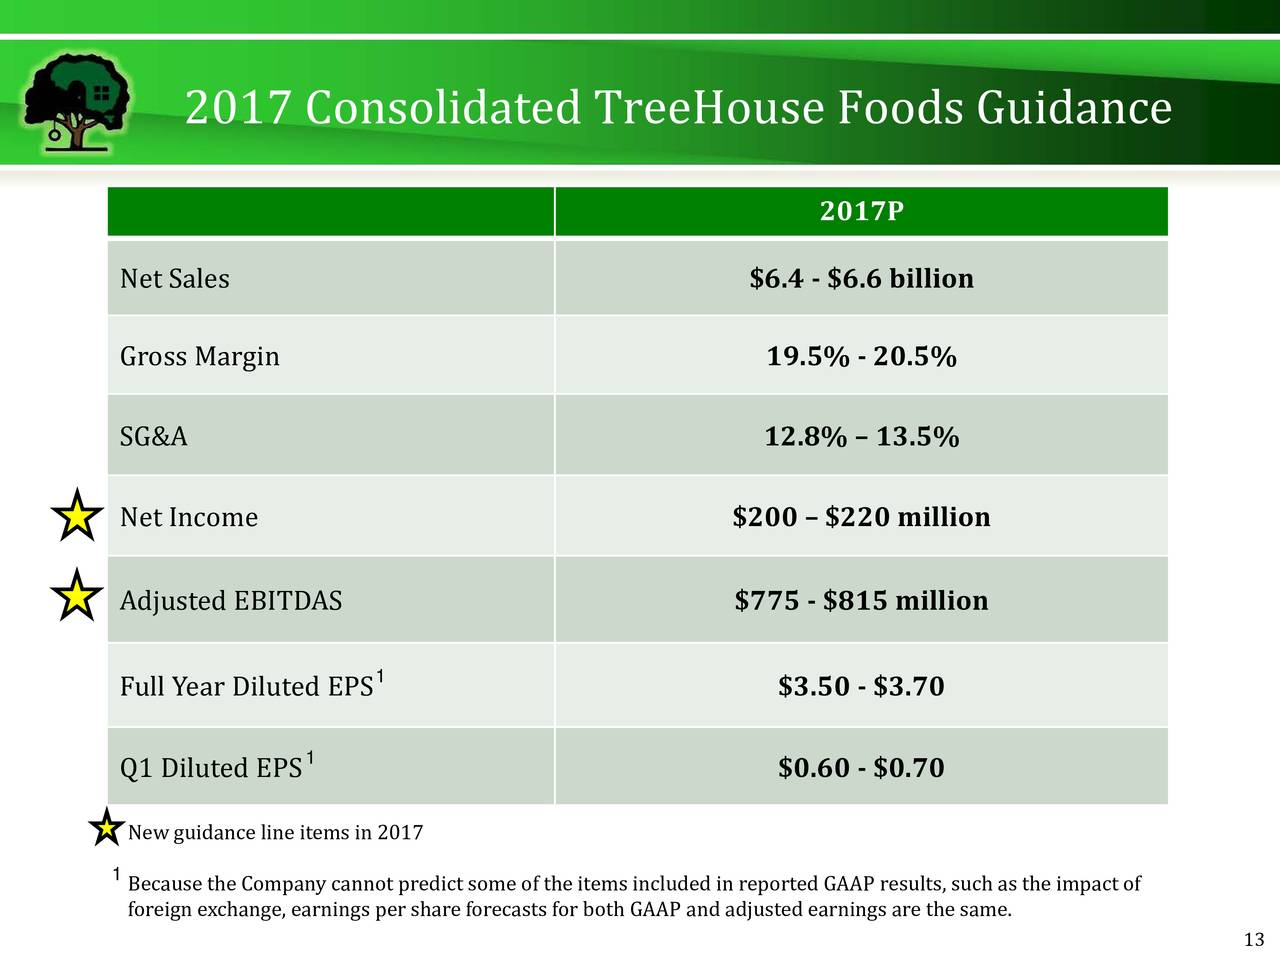 treehouse foods 3 year analysis Stoxlinecom provides: stock quote, technical analysis, fundamental analysis, stock rating, stock market headline news.